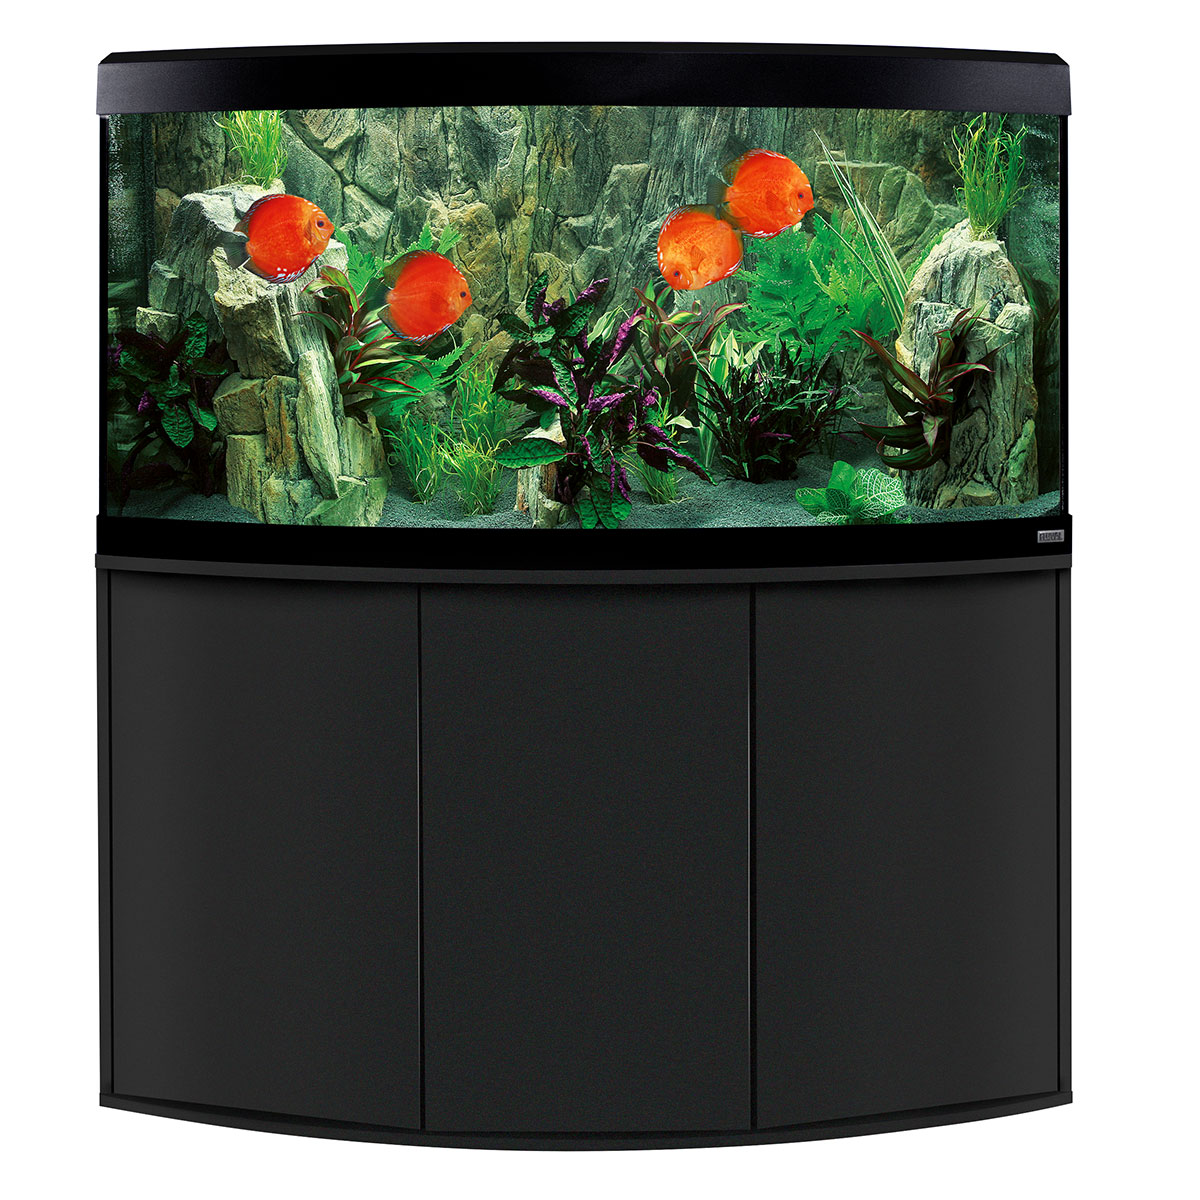 aquarium mit led beleuchtung 28 images led aquarium. Black Bedroom Furniture Sets. Home Design Ideas